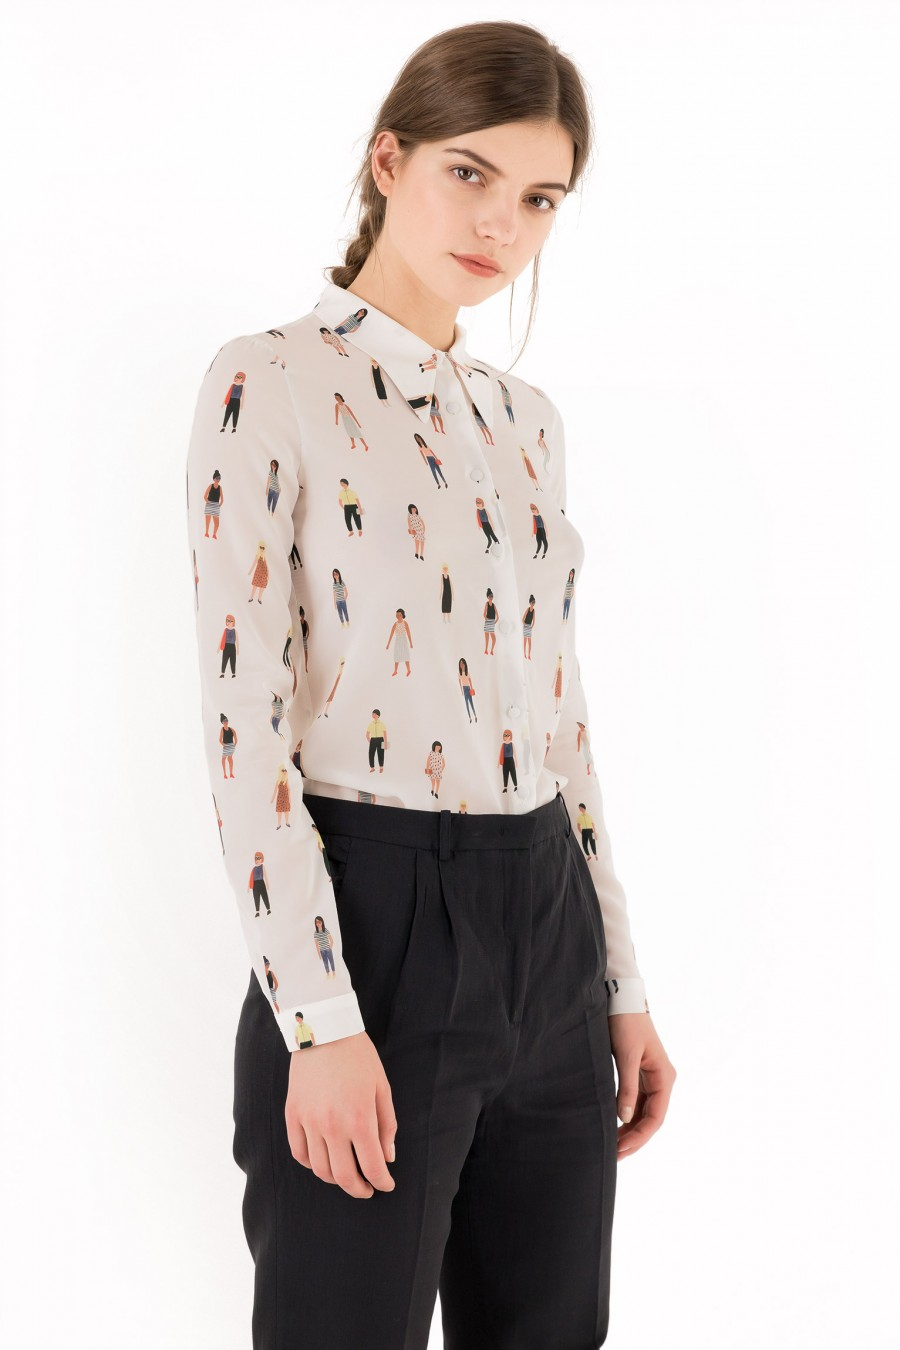 Camicia Lazzari Girl  illustrazione di Kate Pugsley